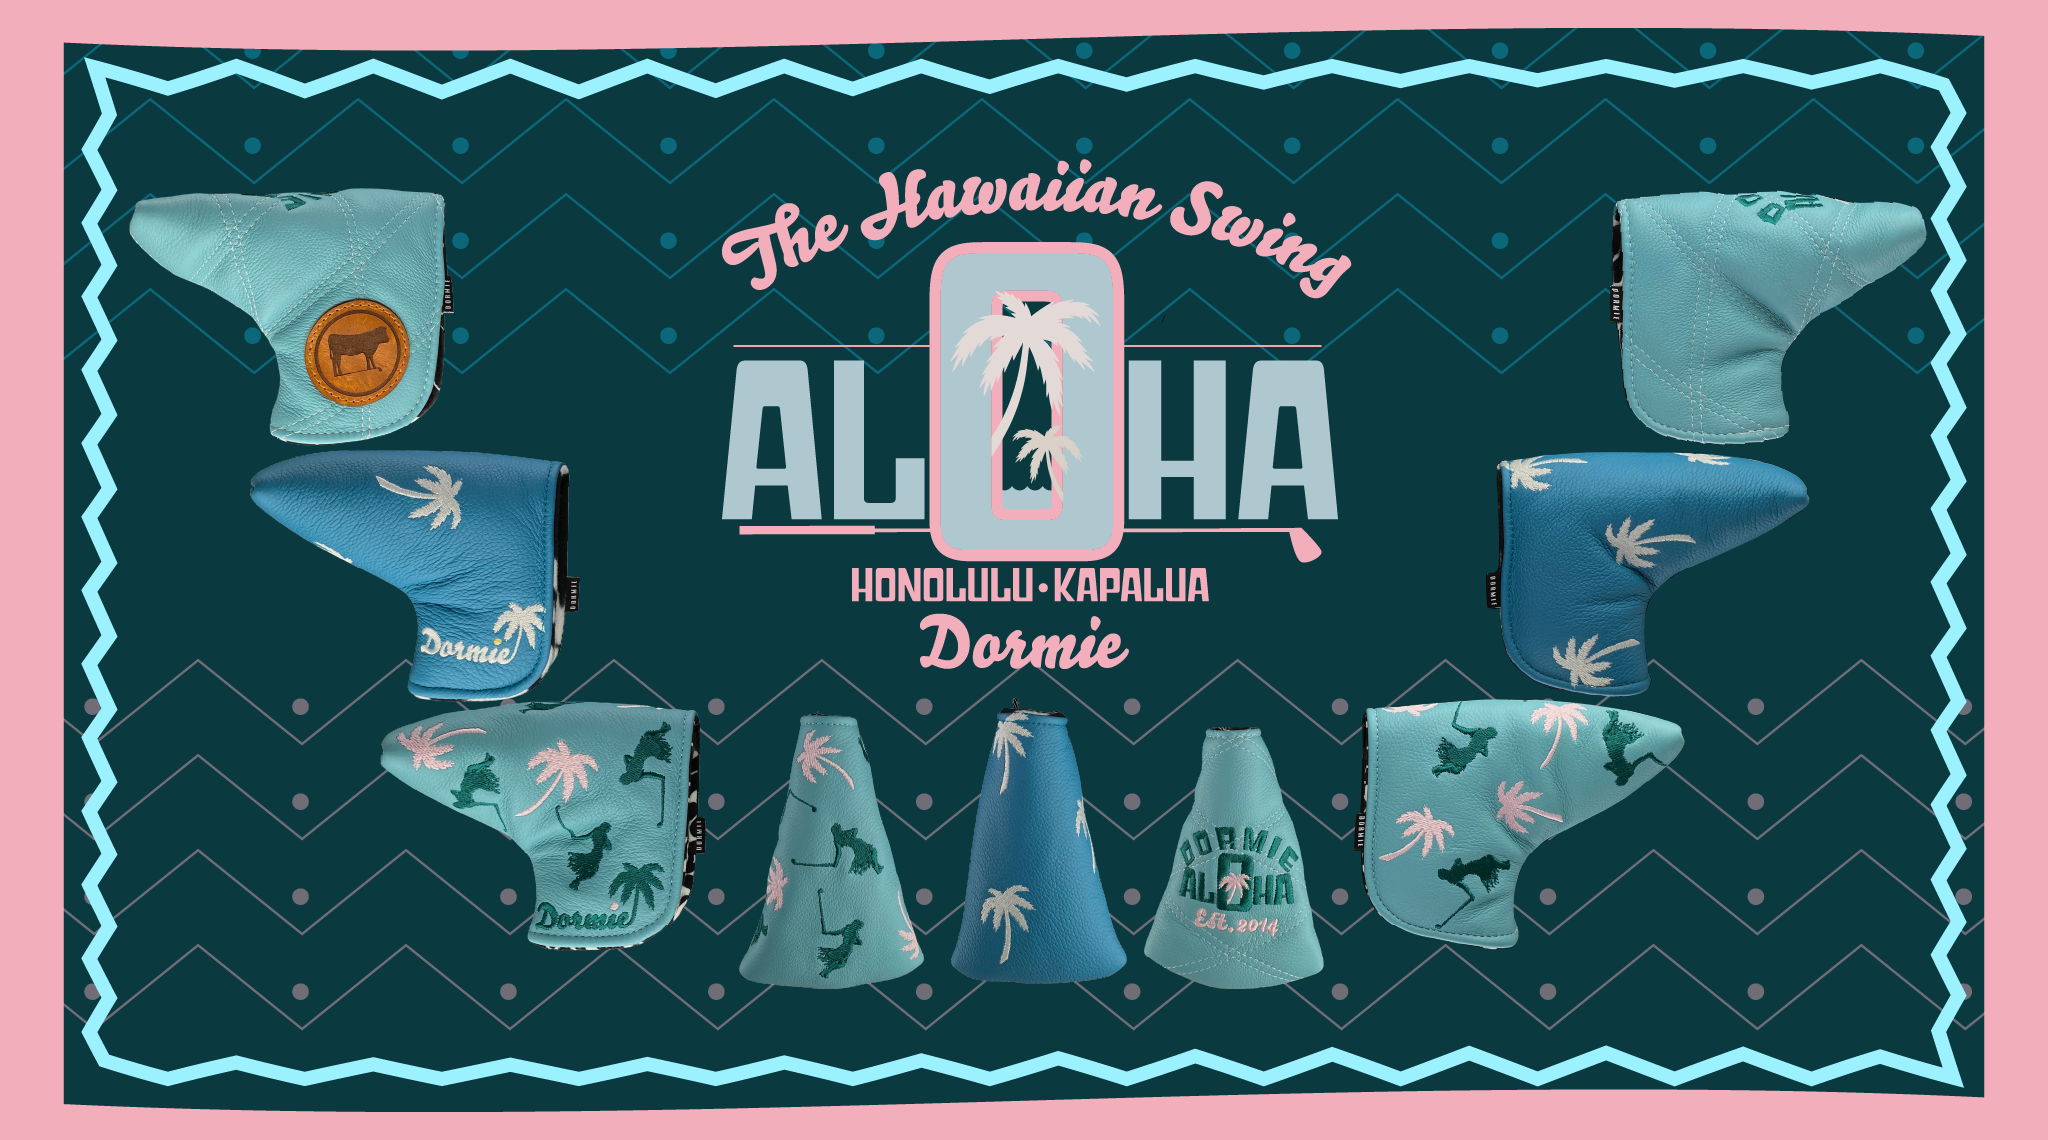 The Hawaiian Swing